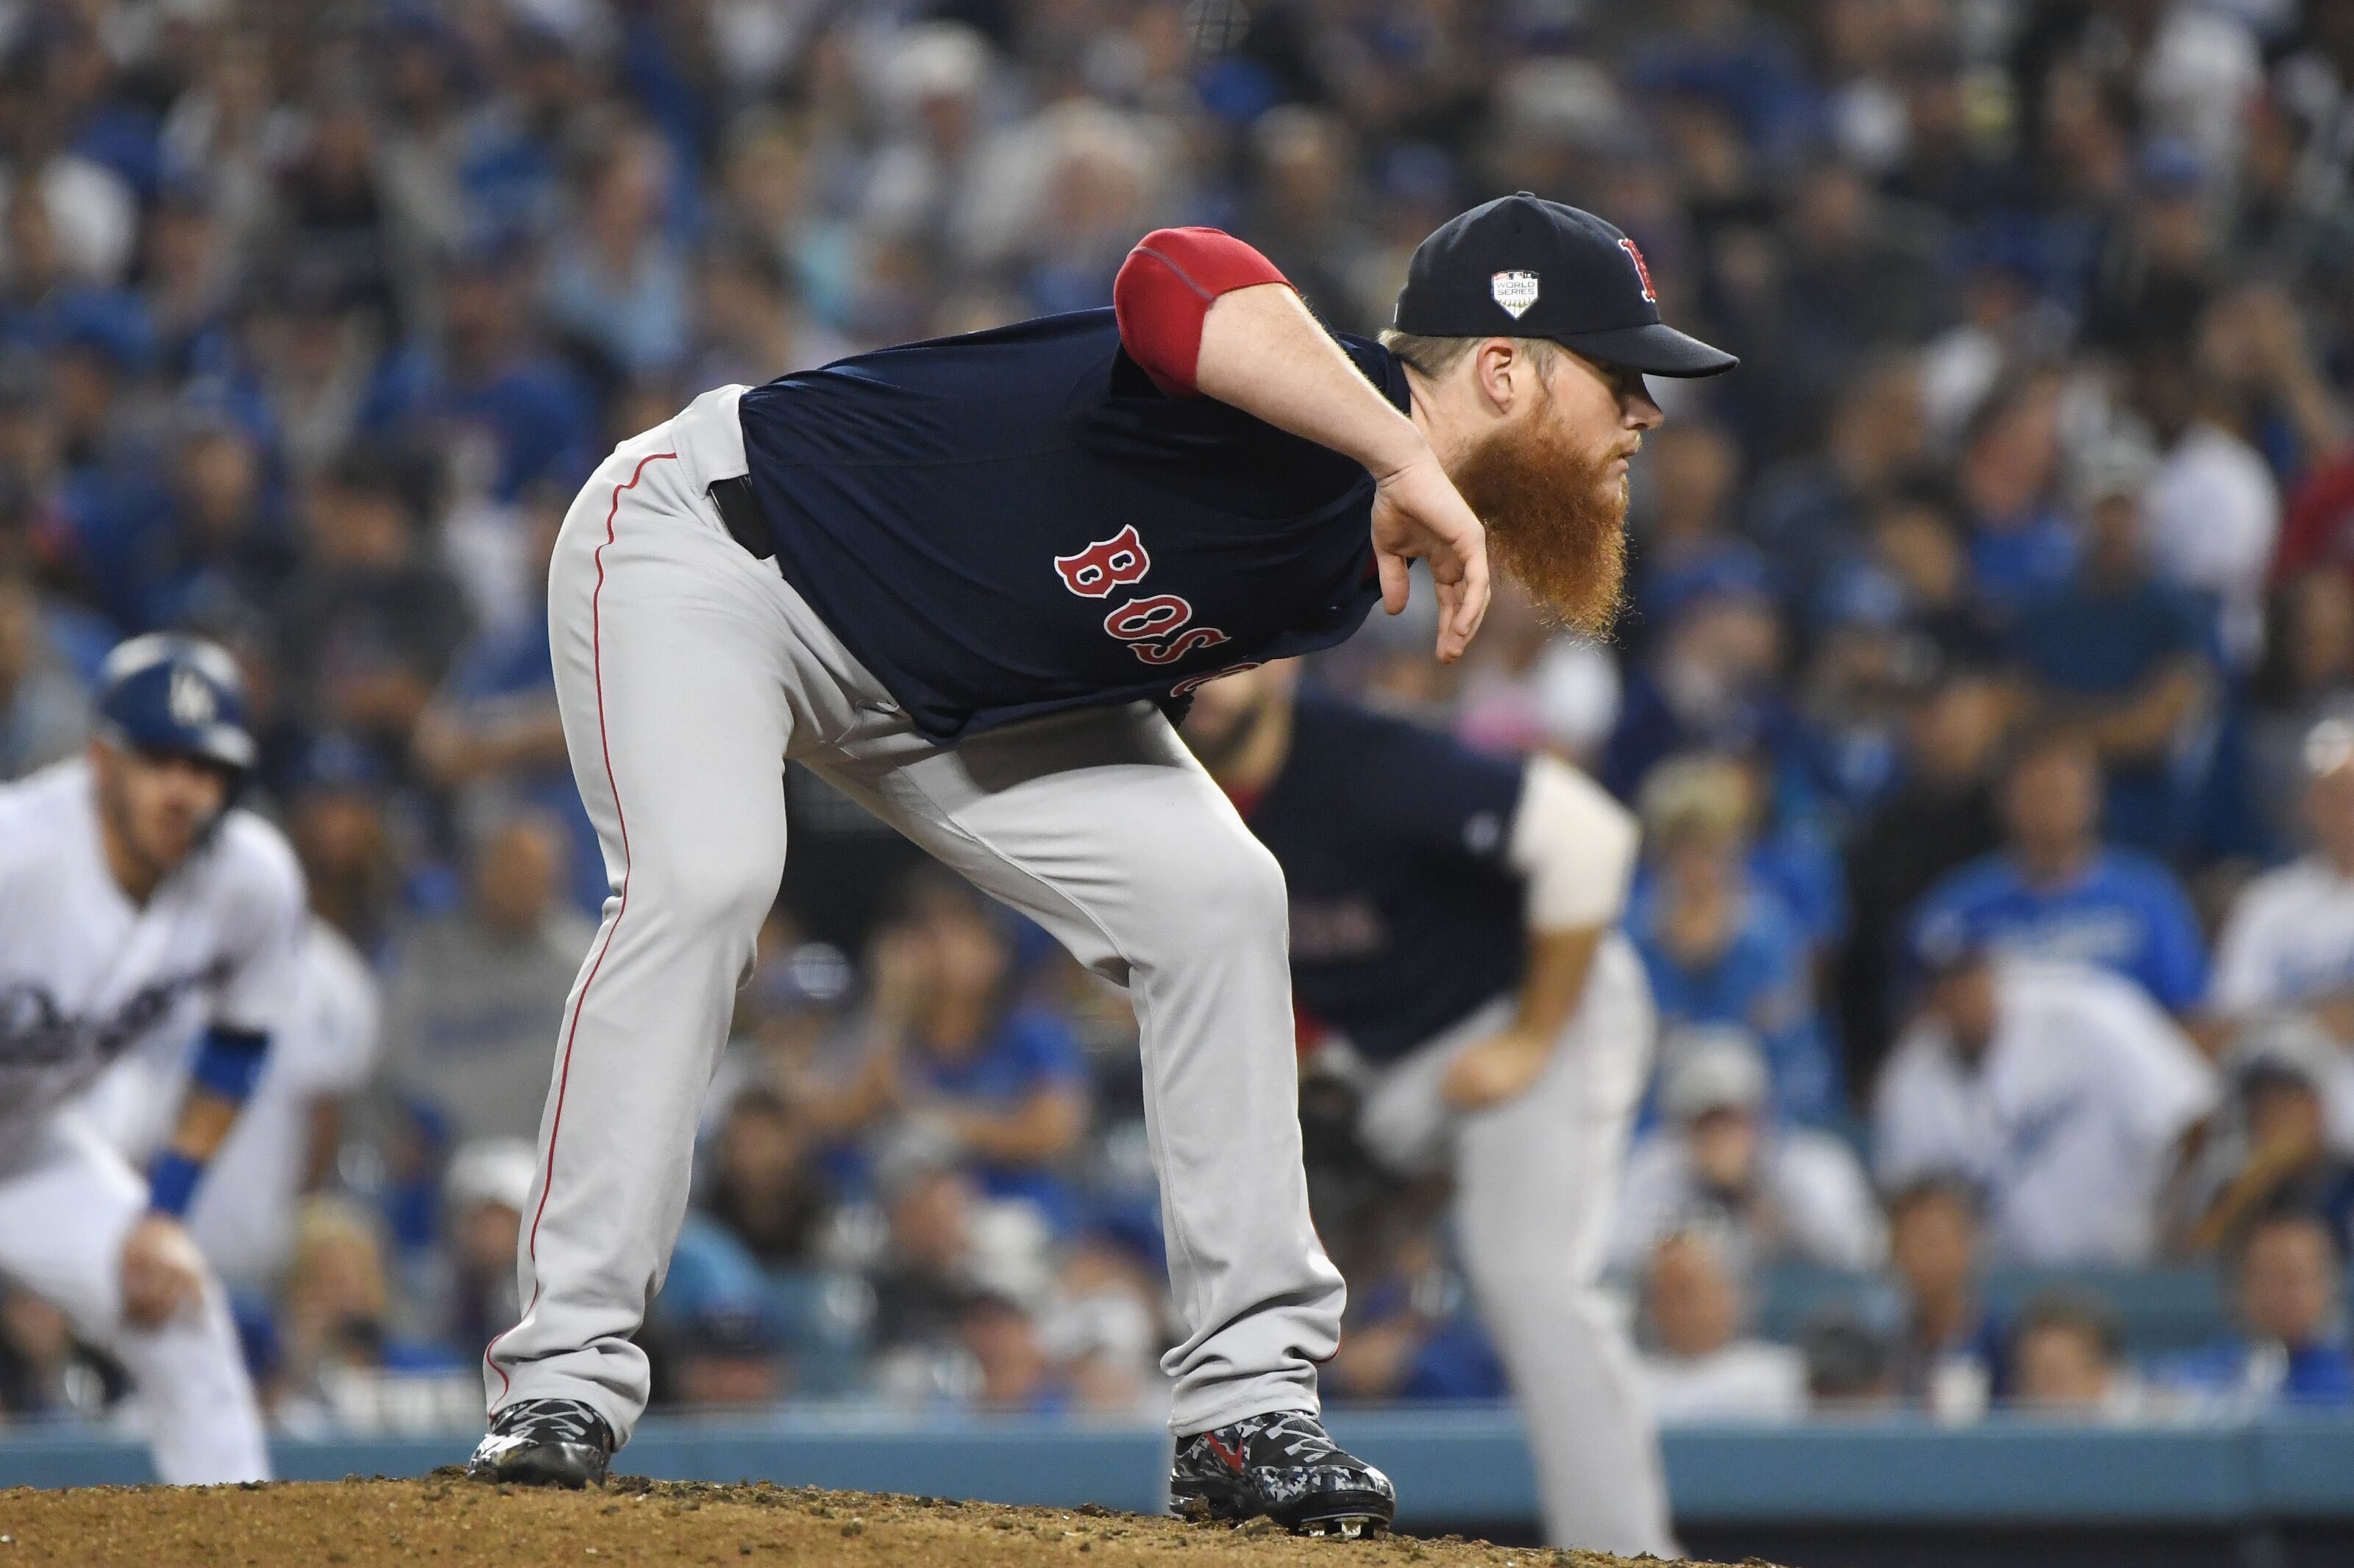 Will Craig Kimbrel and Dallas Keuchel be game-ready?